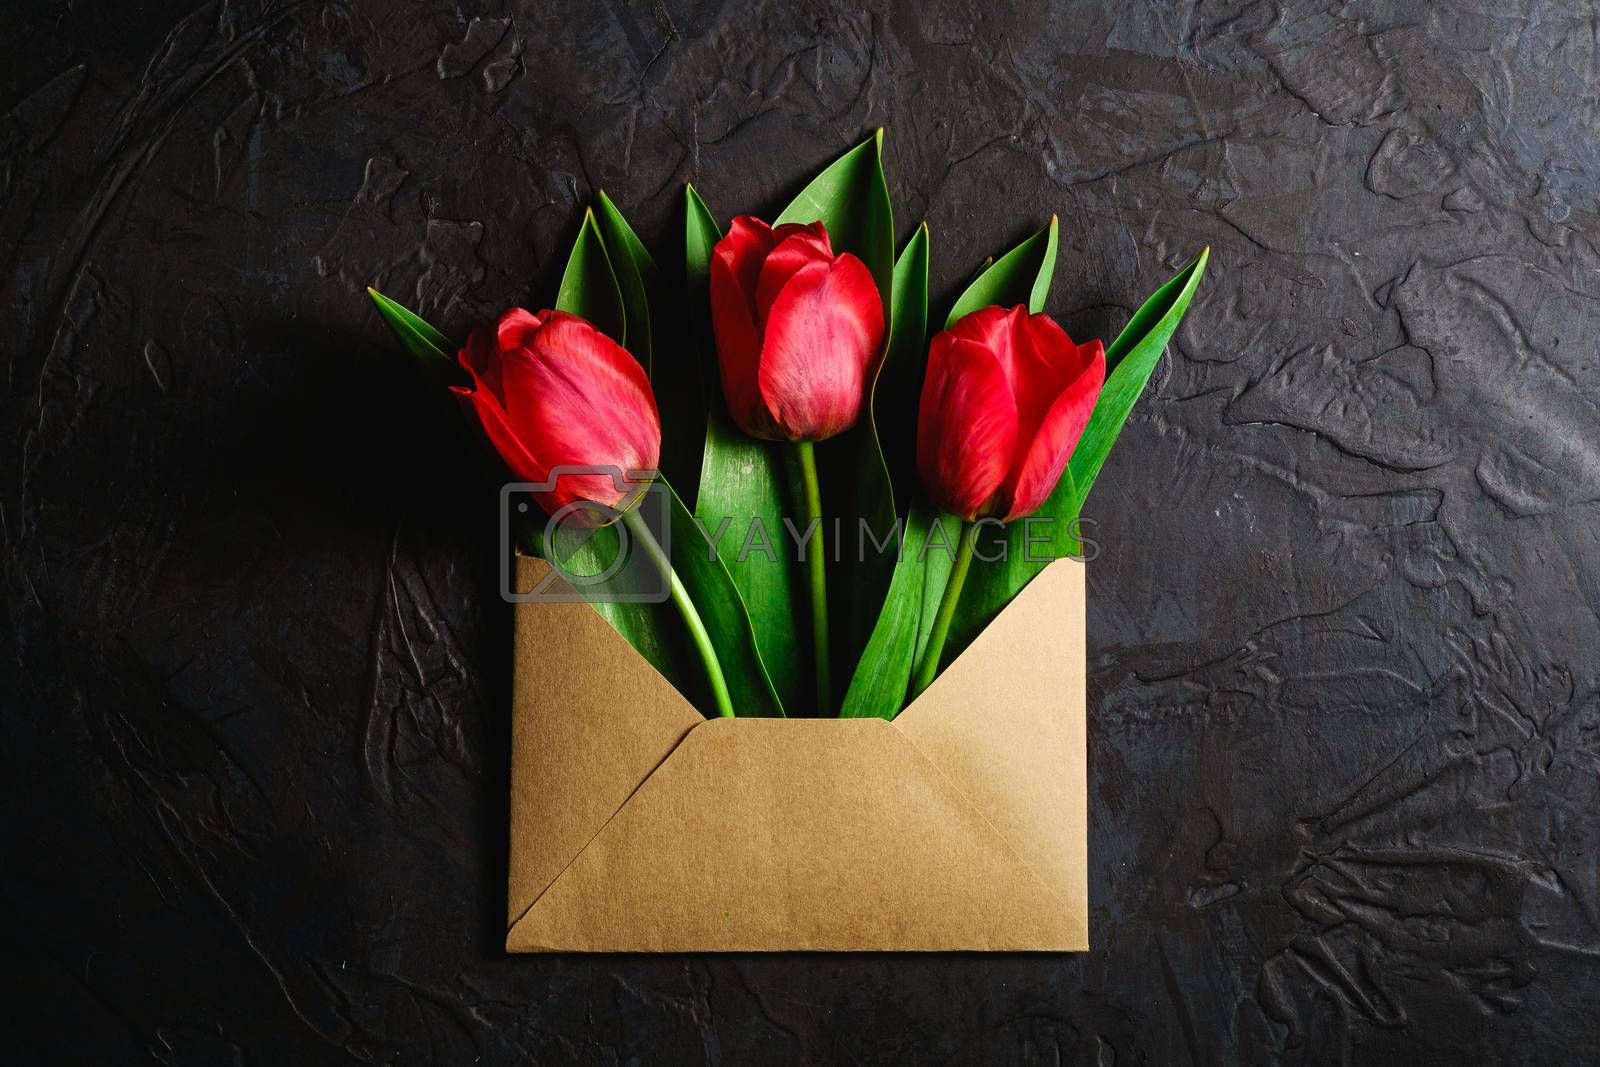 Bunch of red tulip flowers in paper envelope on textured dark black background, top view copy space